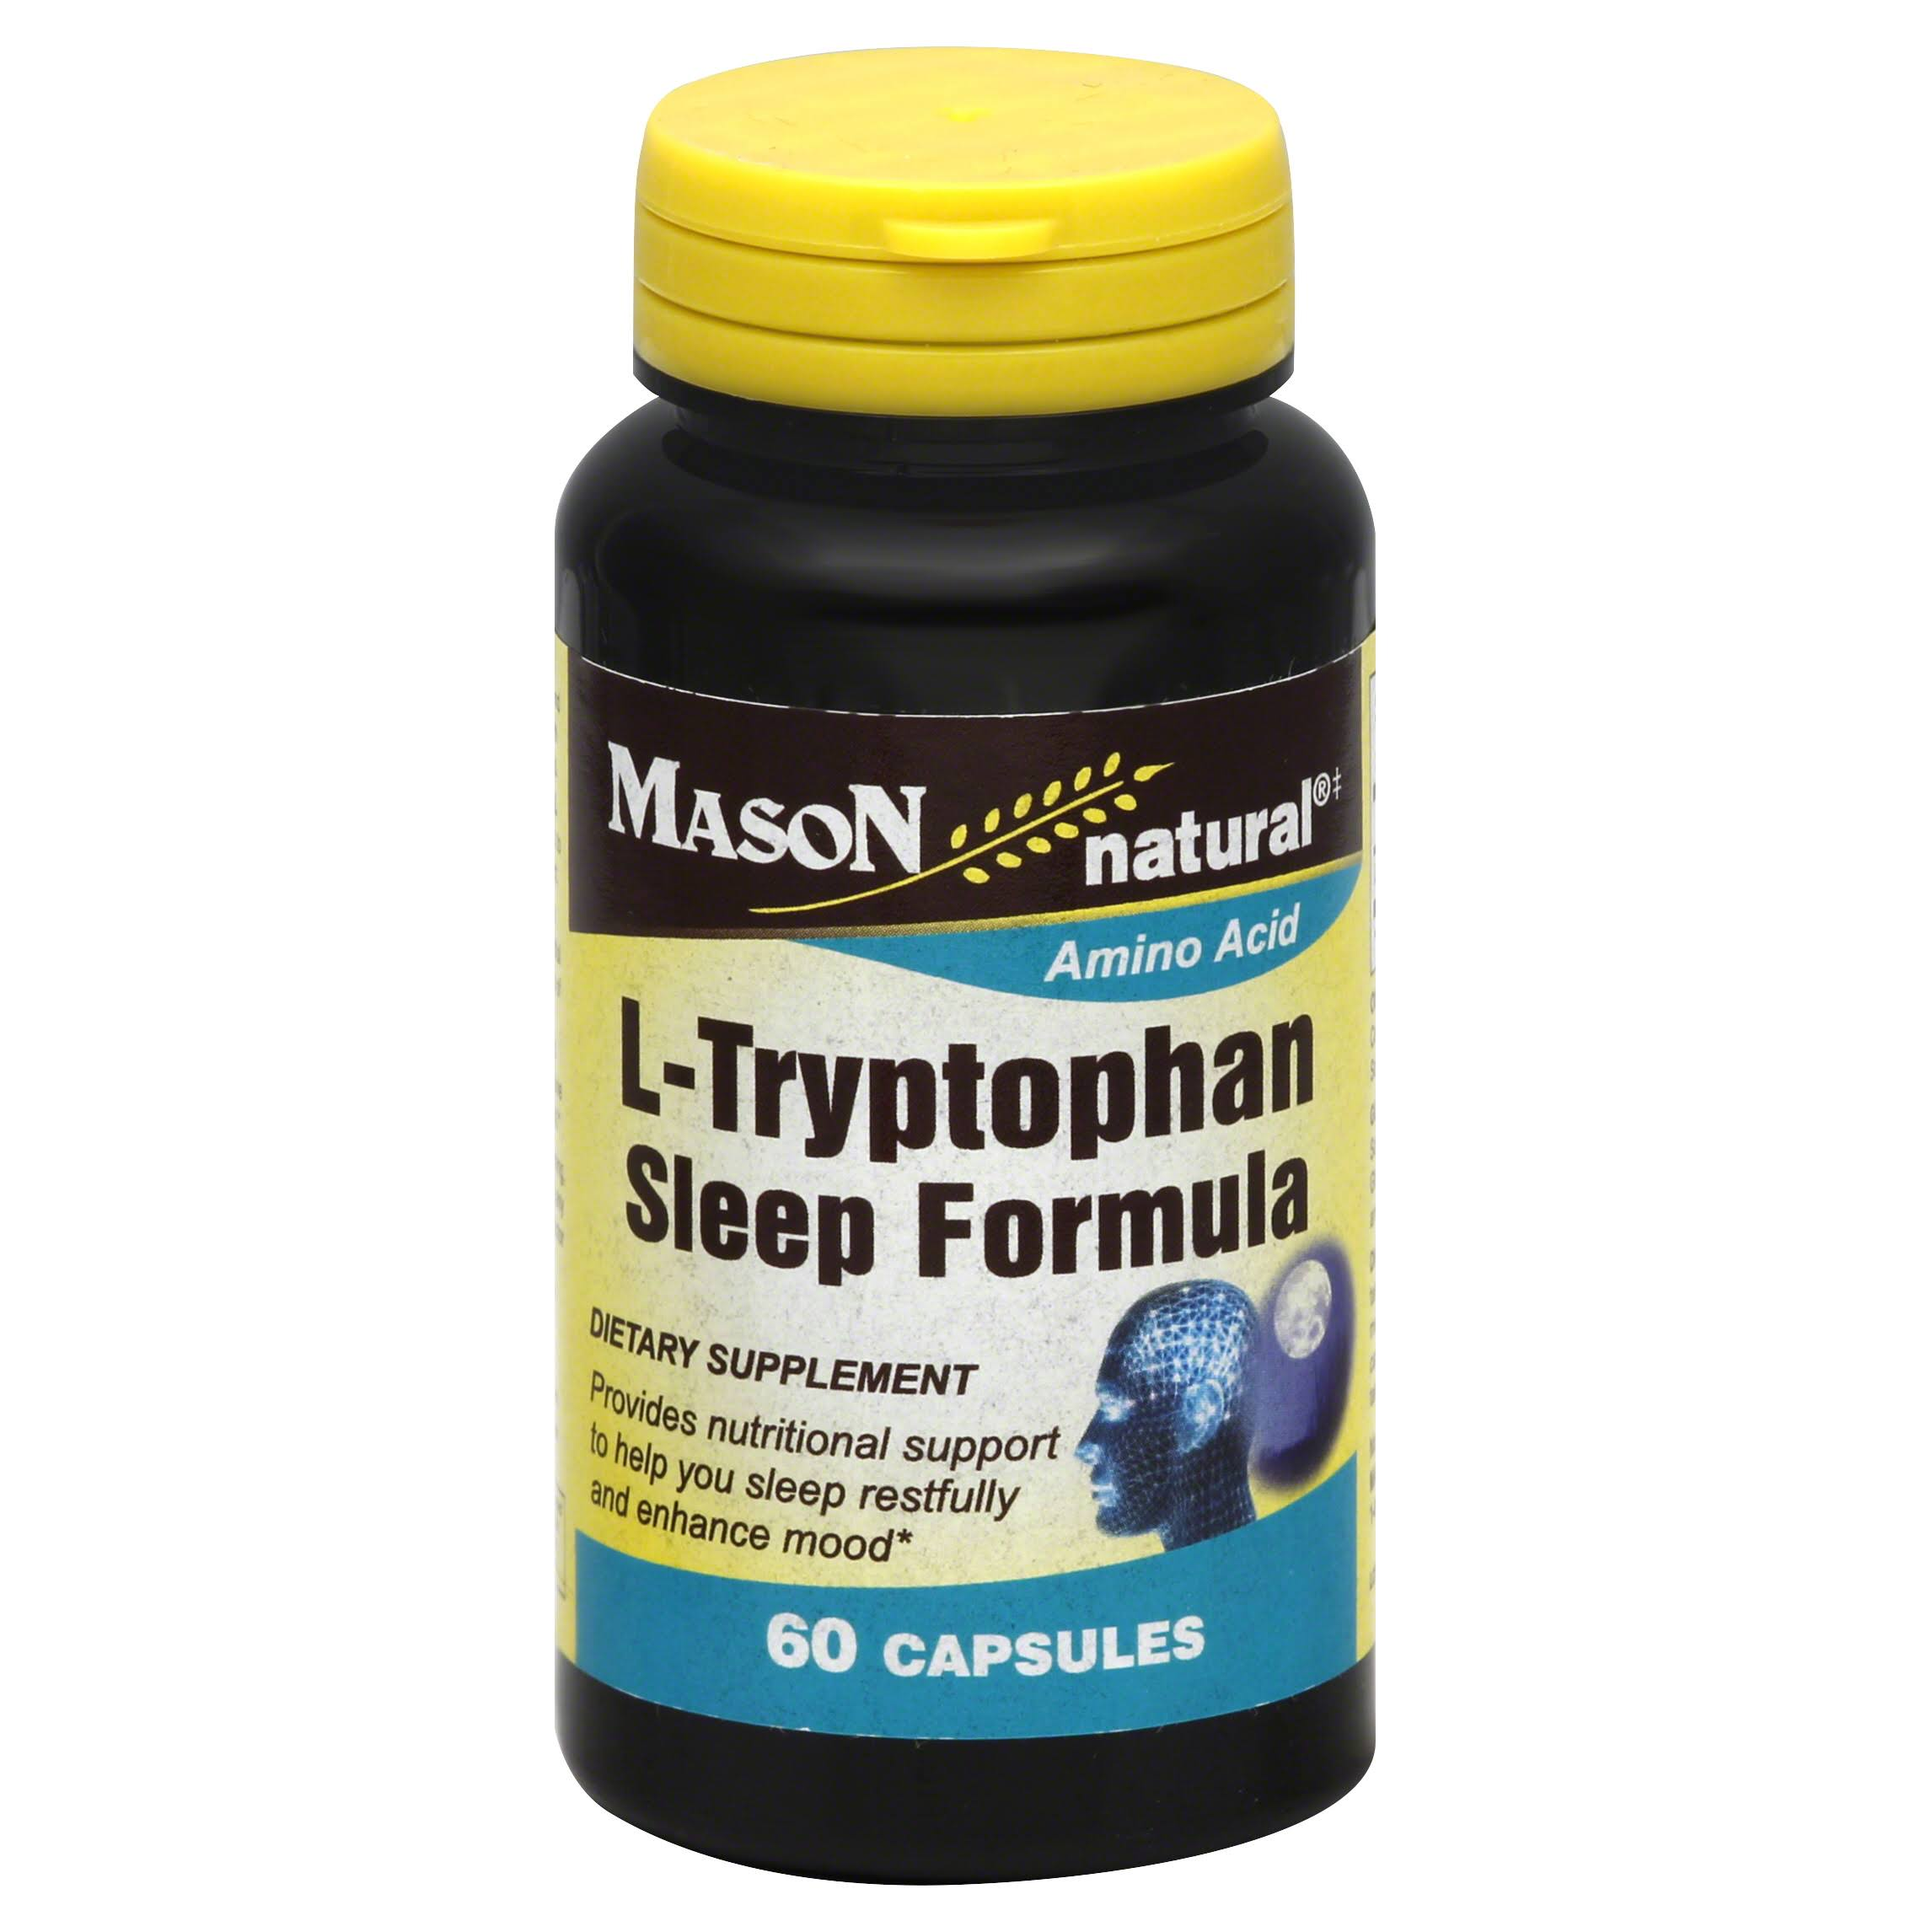 Mason Natural L Tryptophan Sleep Formula Capsules - 60ct